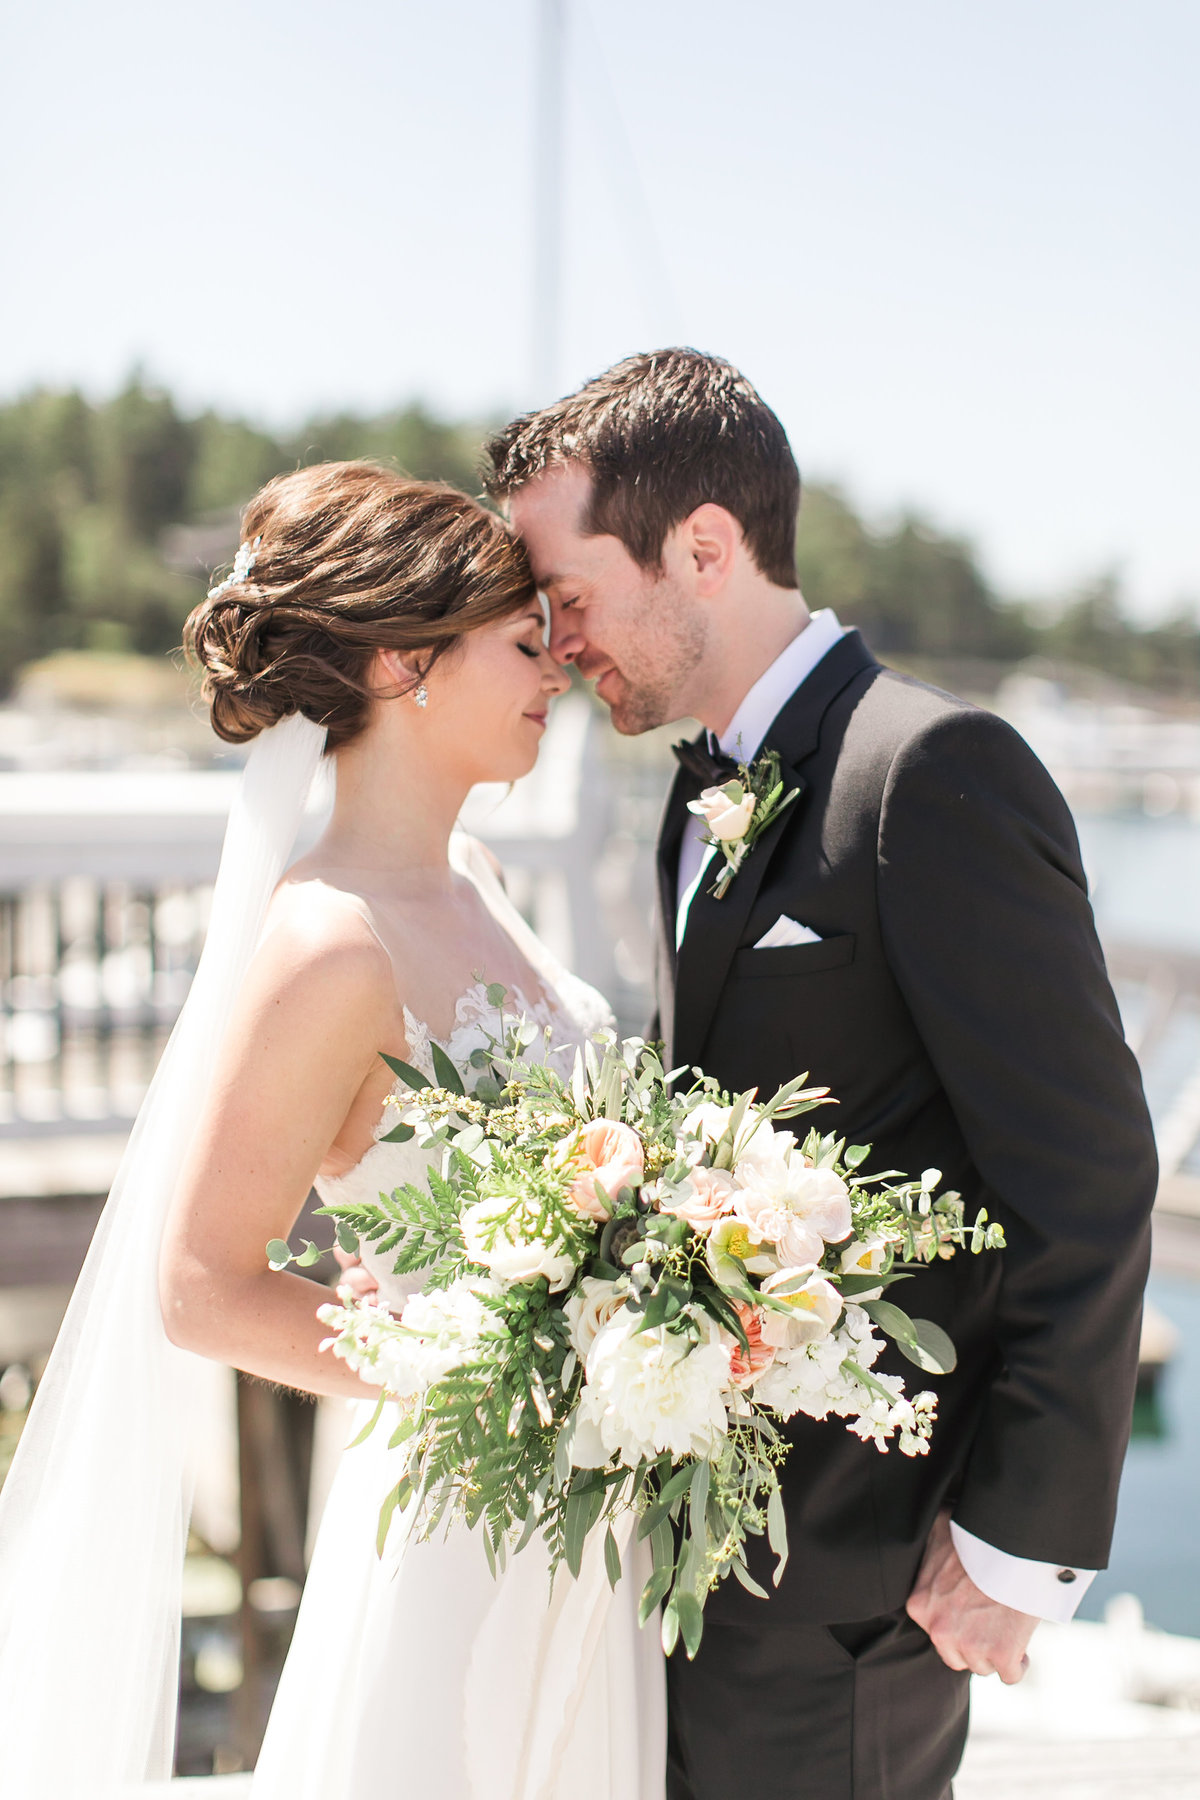 ashley-dave-roche-harbor-wedding478236